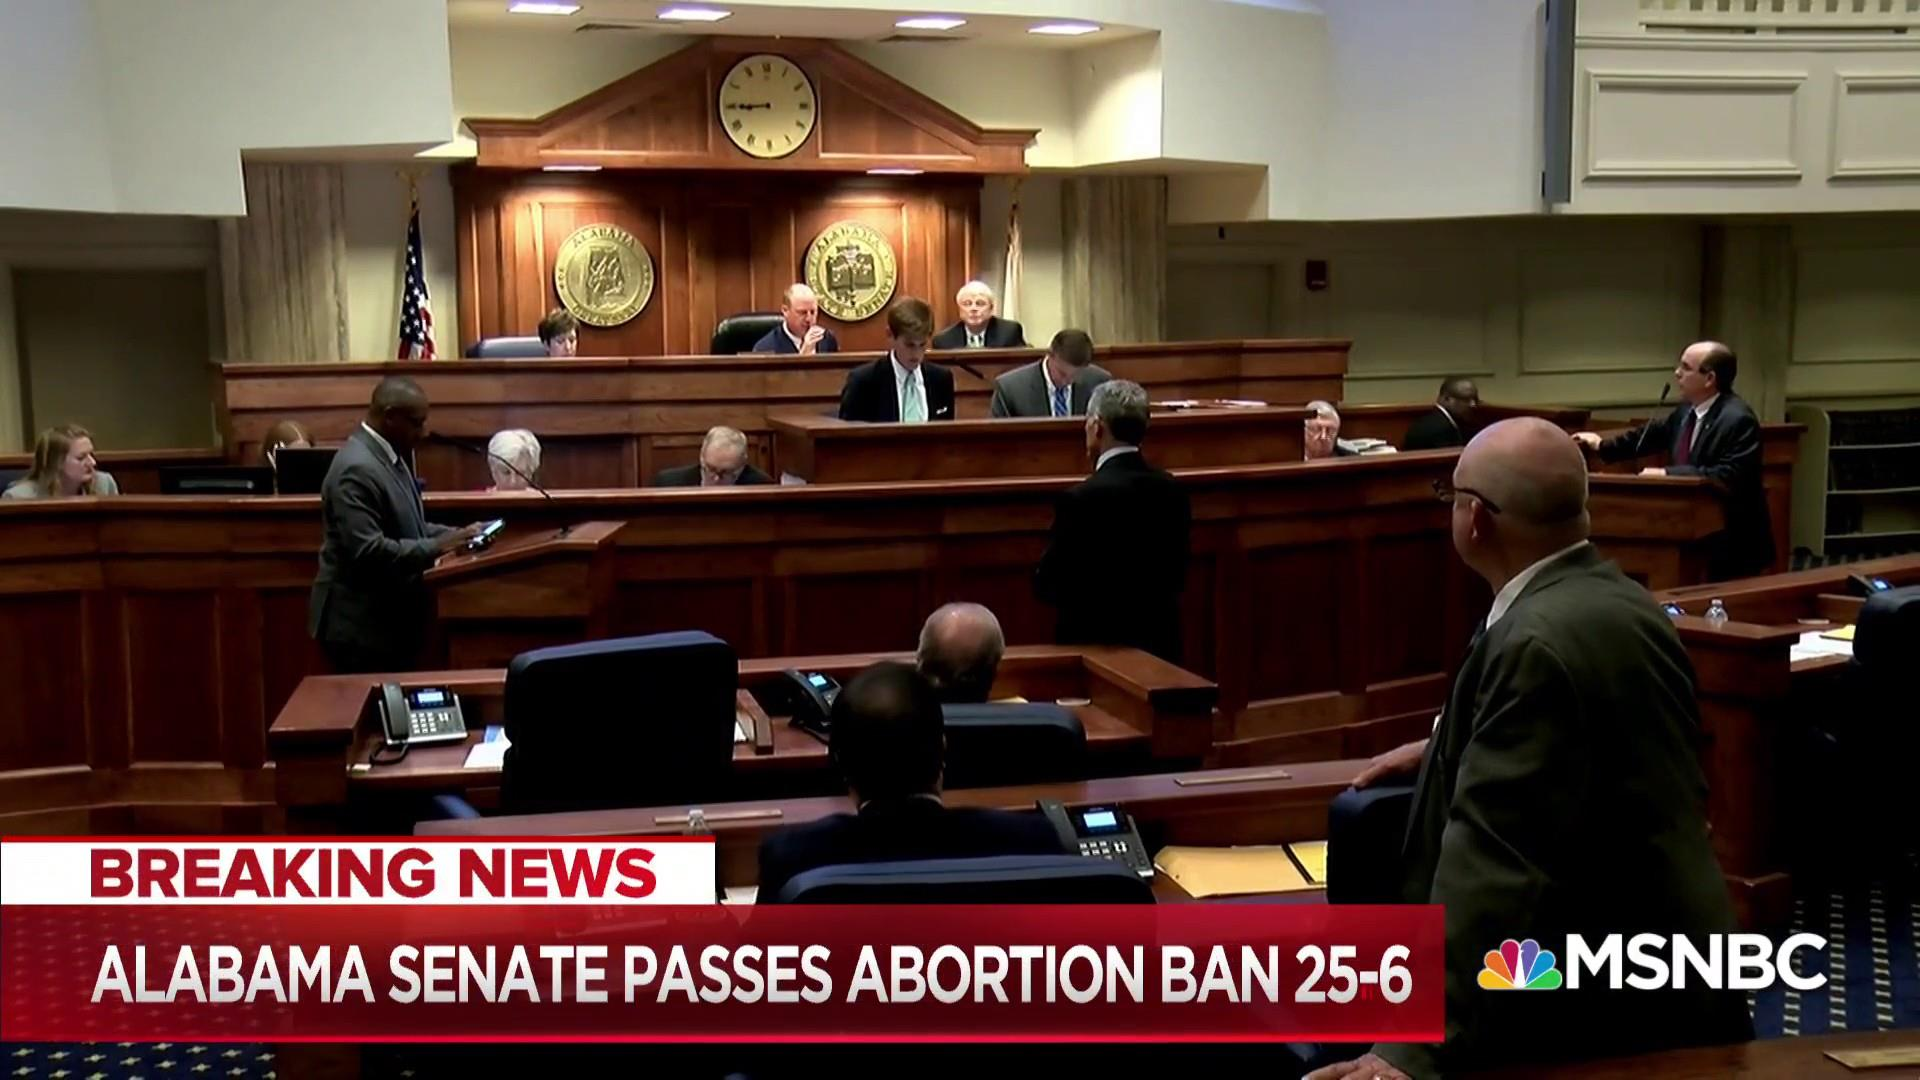 Alabama Senate passes abortion ban with no exceptions